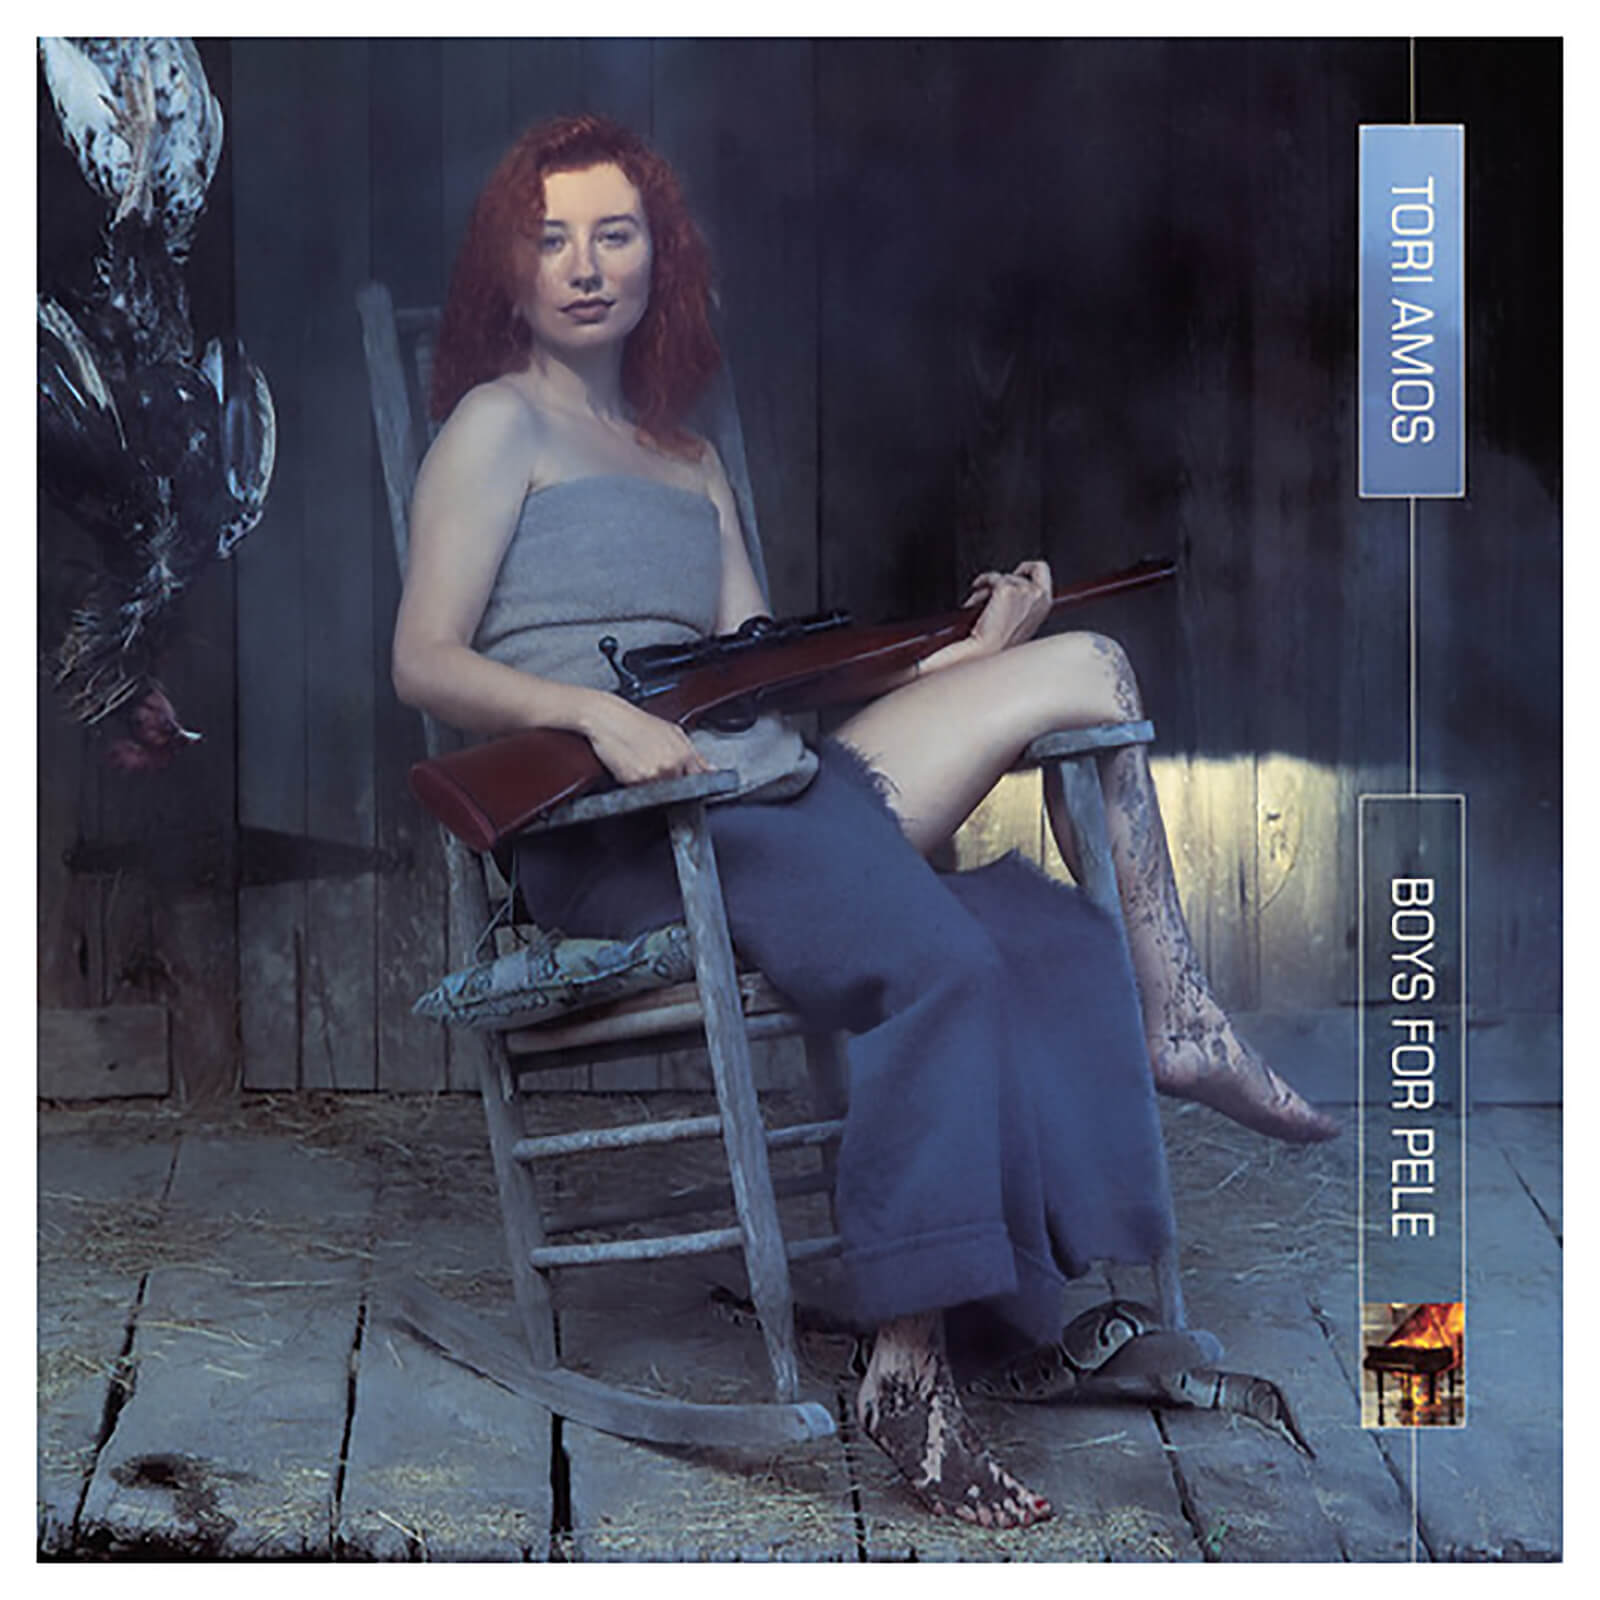 Tori Amos - Boys For Pele - Vinyl